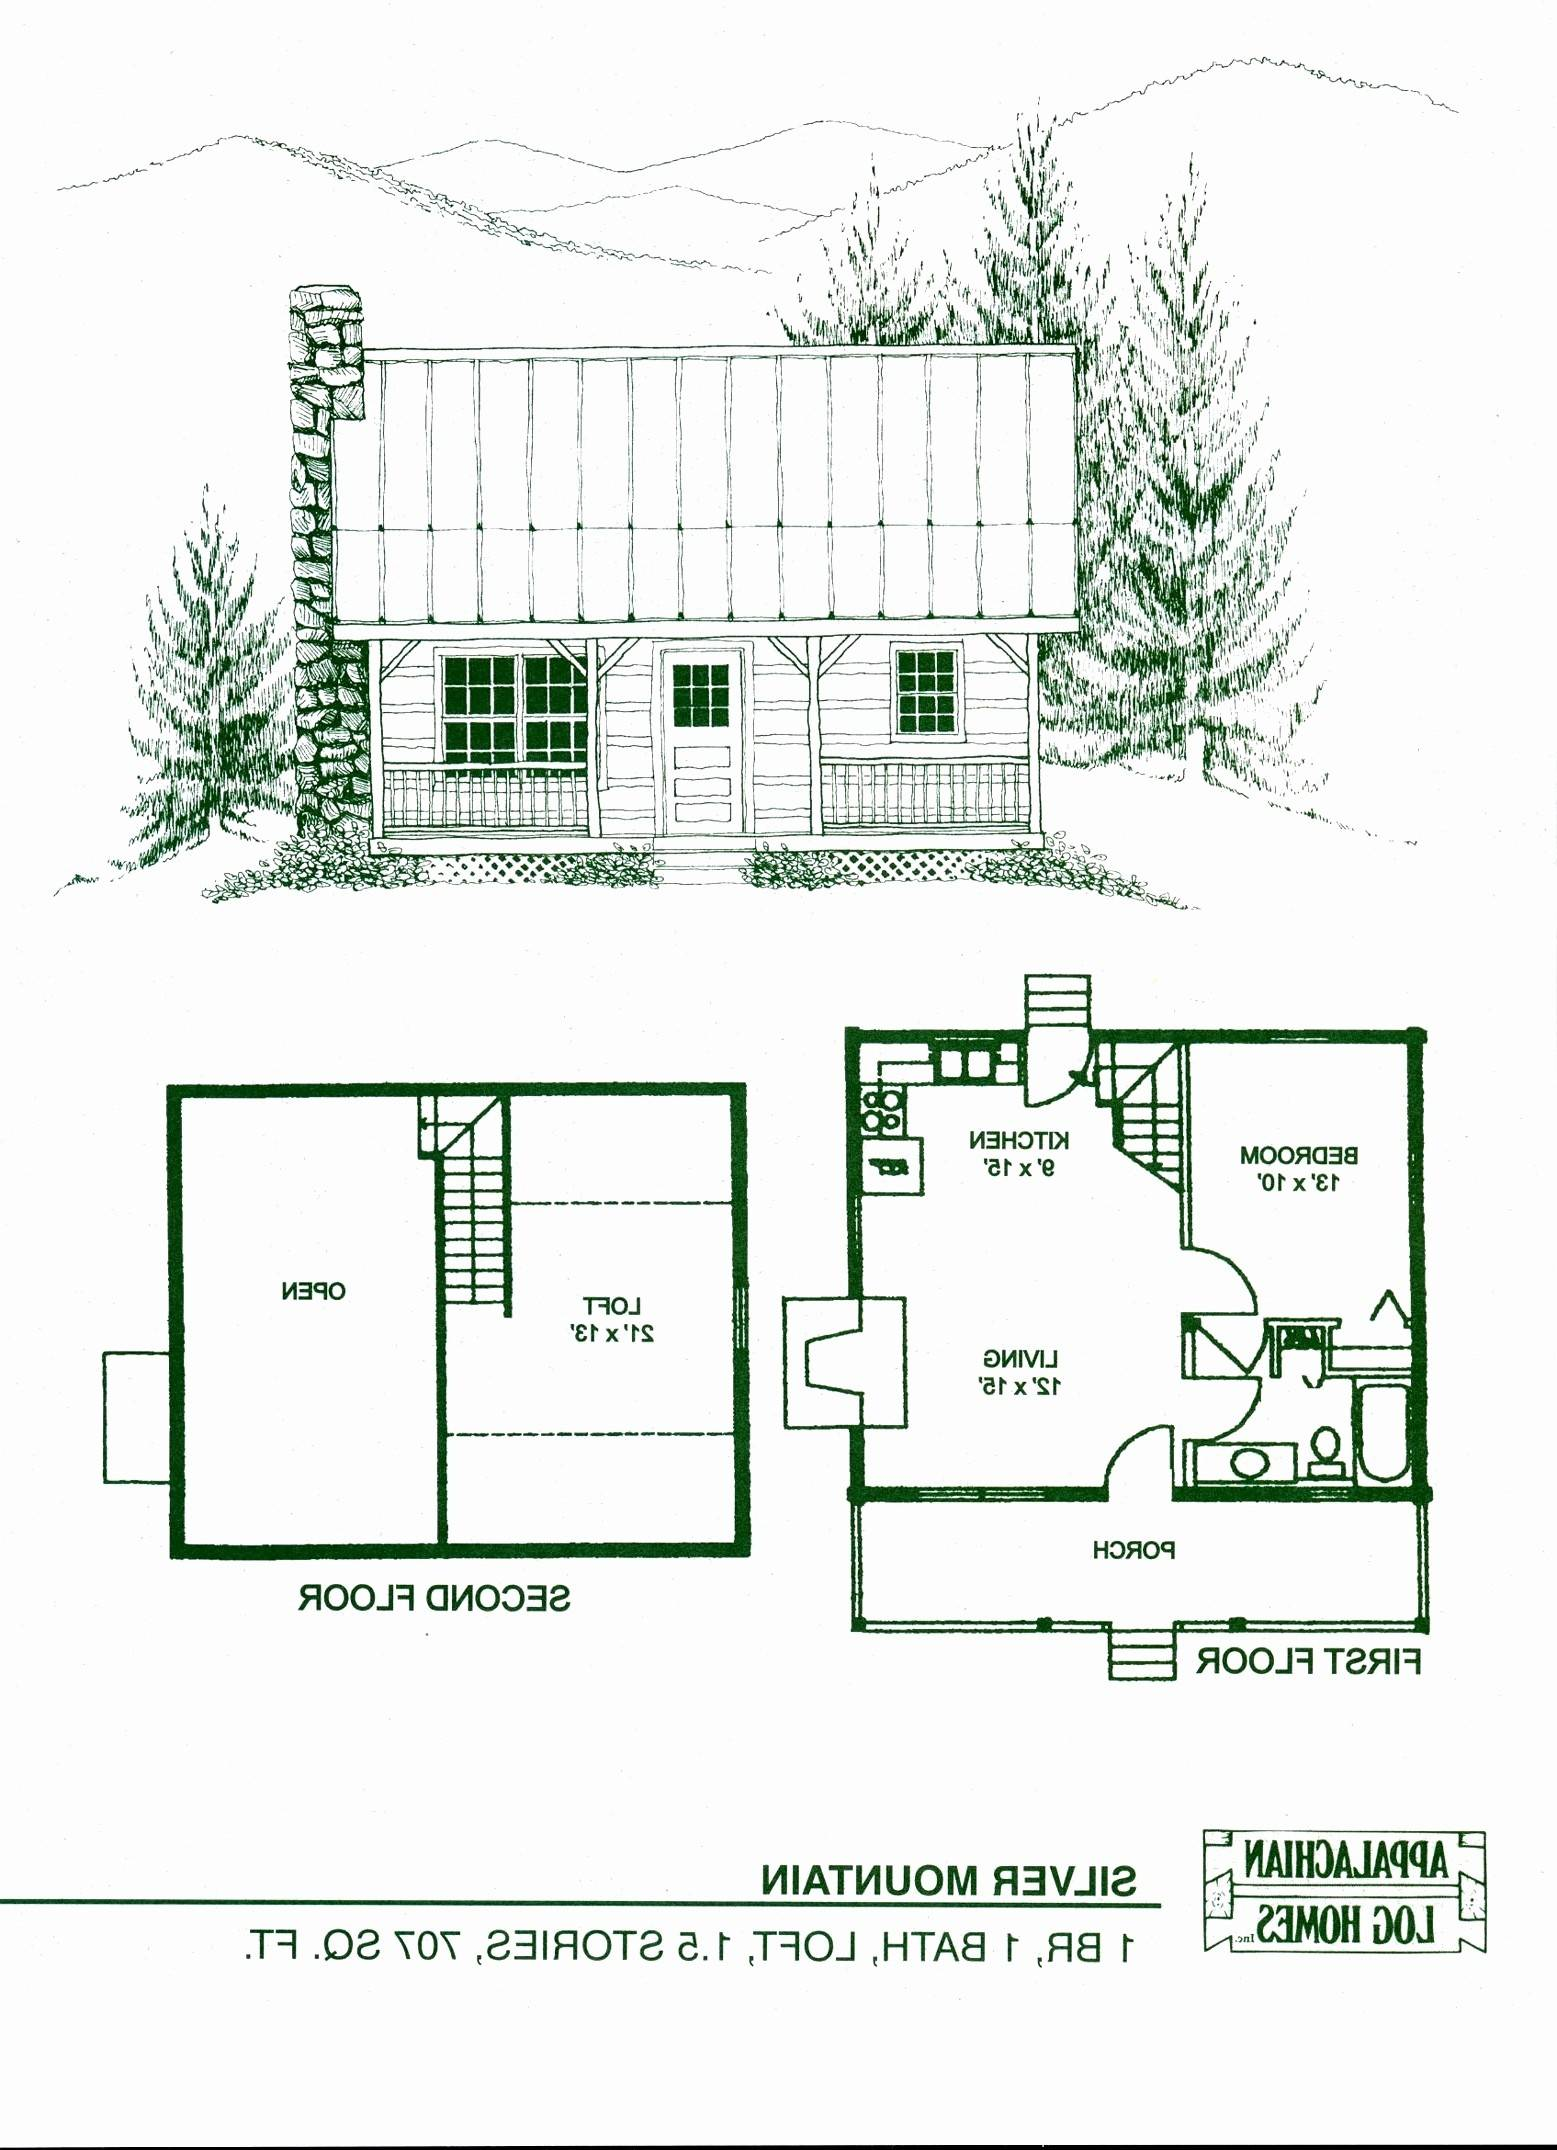 interior pictures of modular homes prepossessing modular homes plans modular home floor plans and prices luxury floor plans 0d